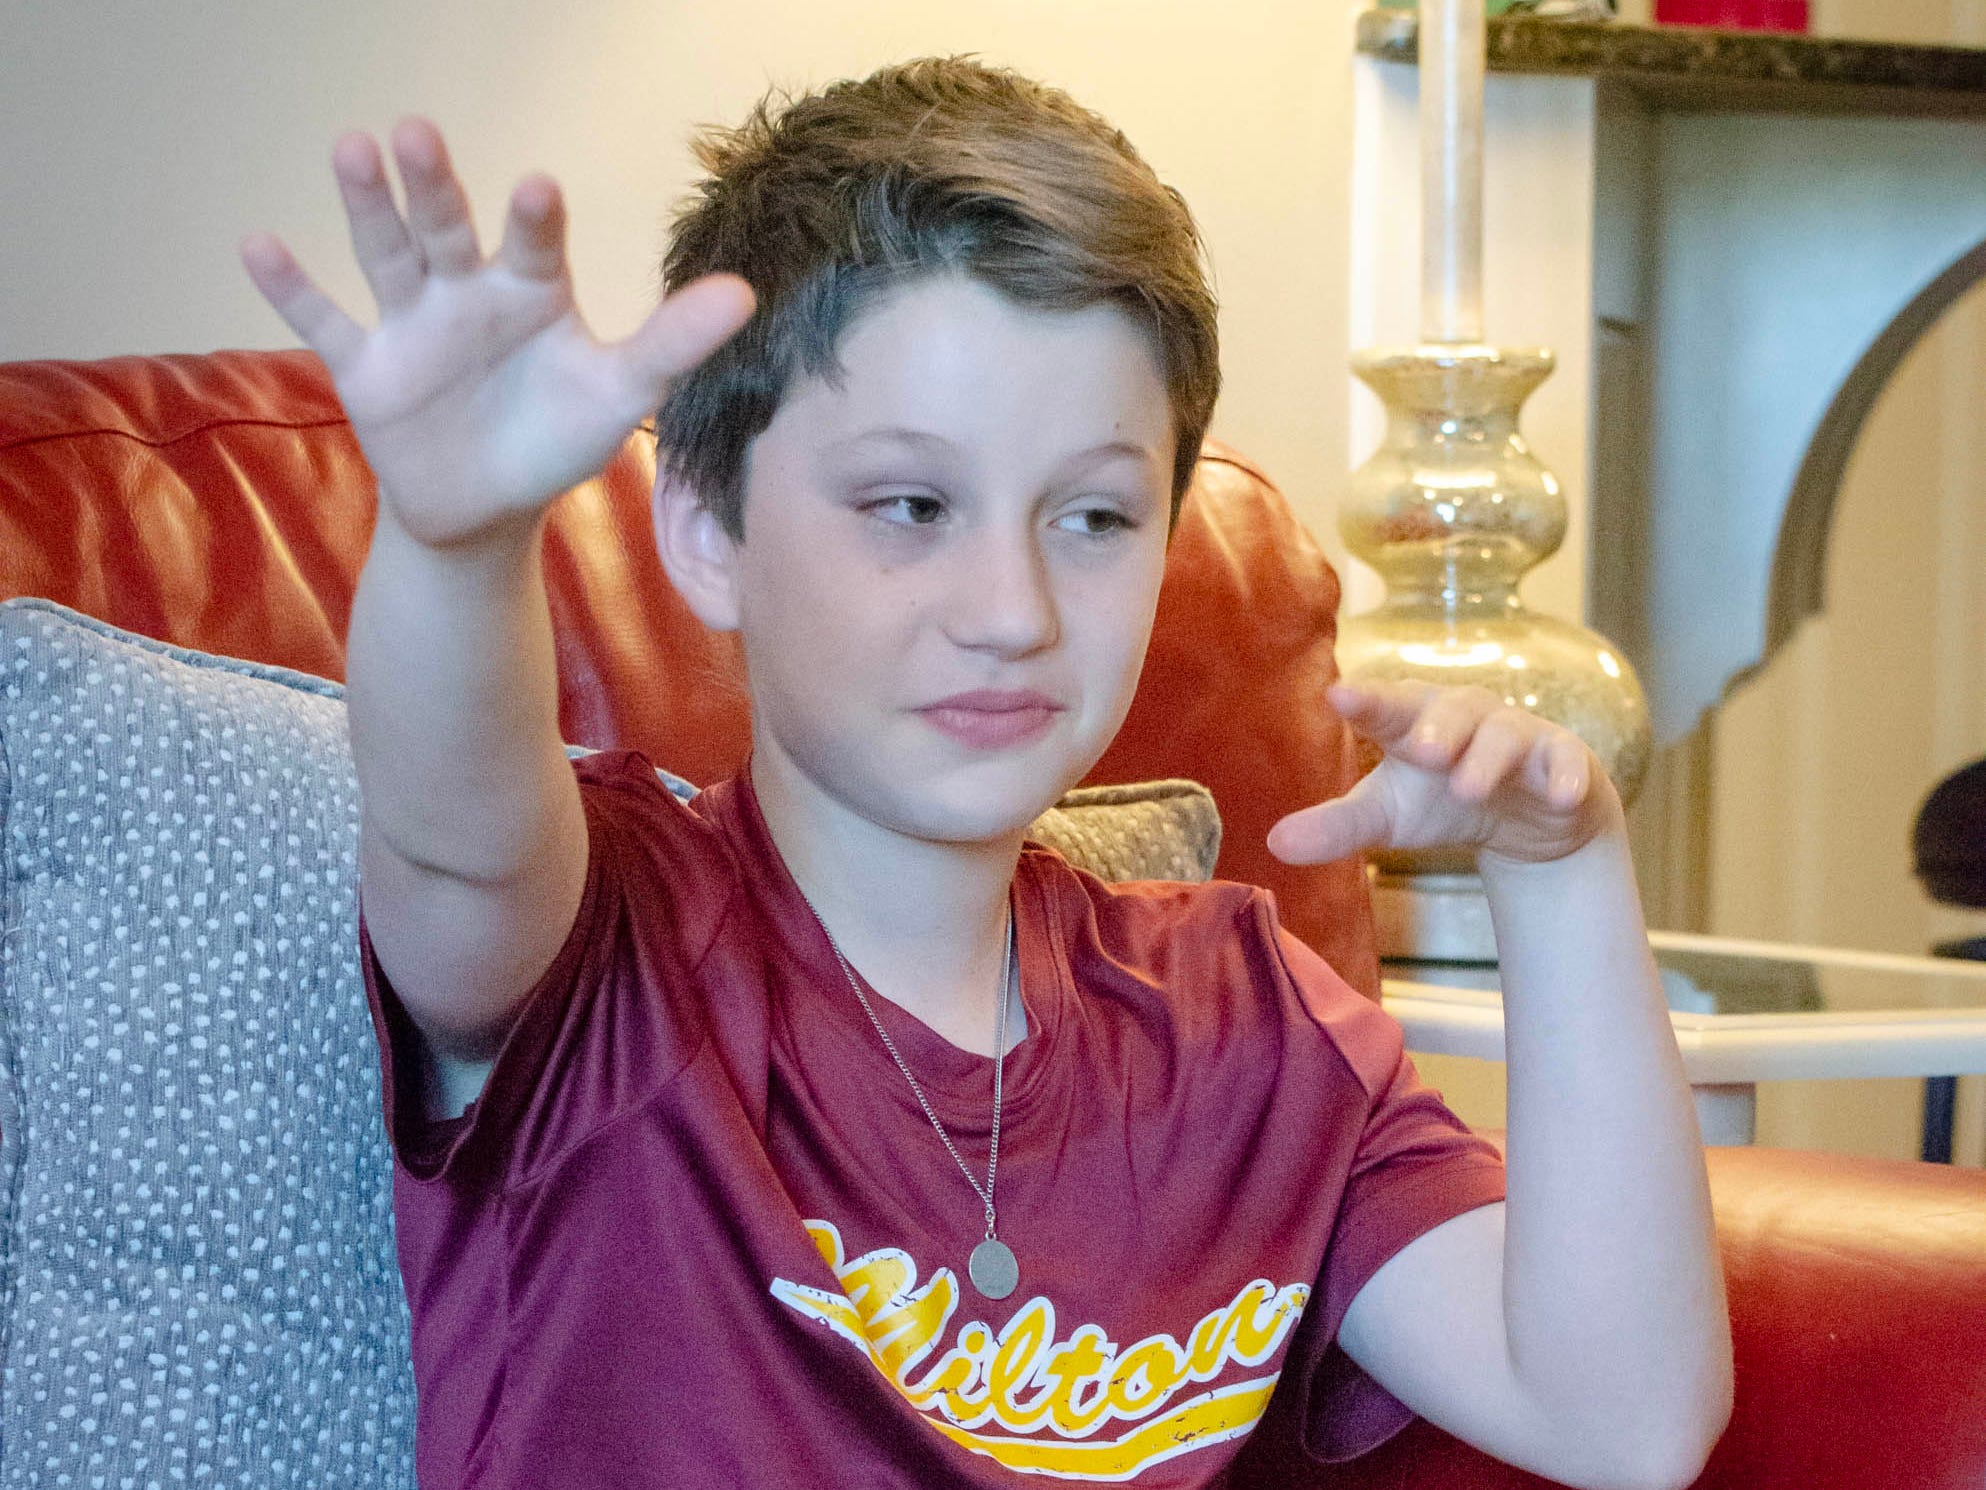 Colin McGee, 11, had a 7-inch malignant tumor and kidney removed, went through months of chemotherapy. He rang the bell celebrating his remission in January.